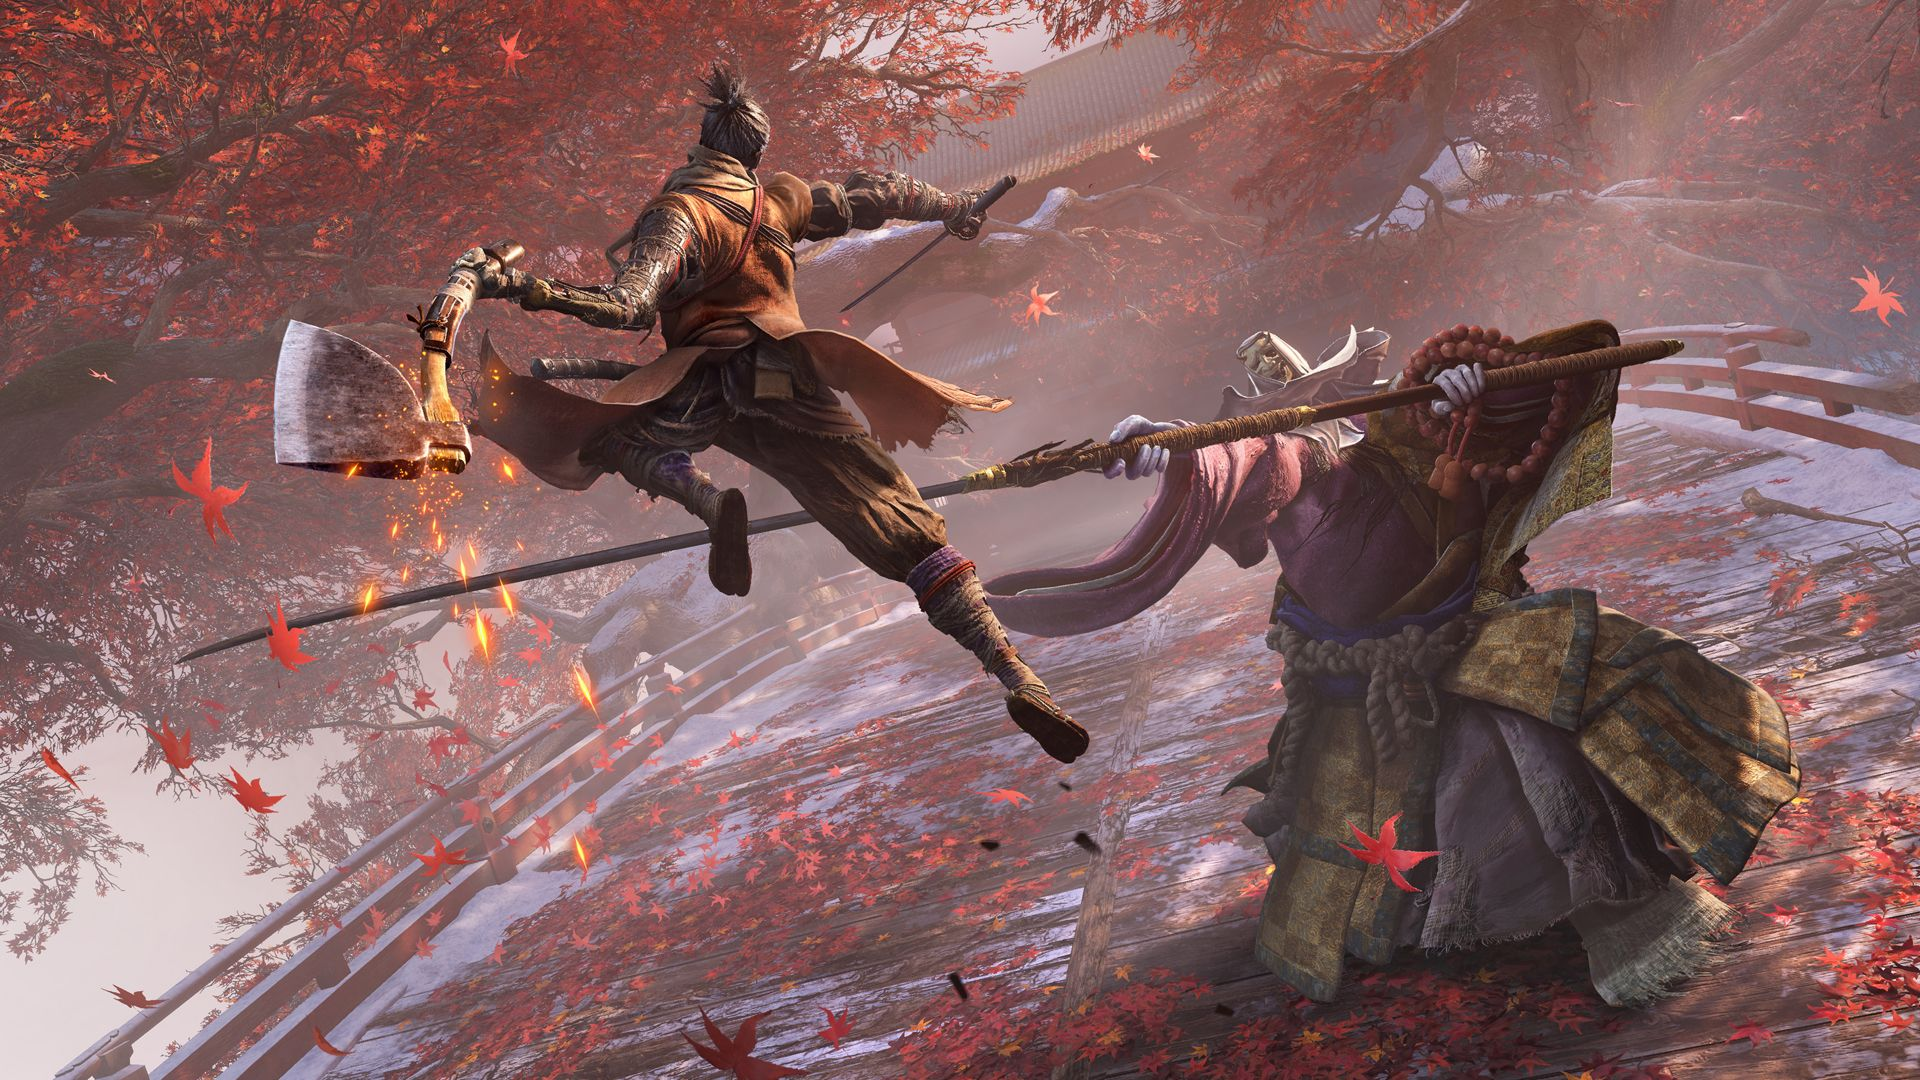 Video Games & Consoles Sekiro Shadows Die Twice Steelbook Selling Well All Over The World